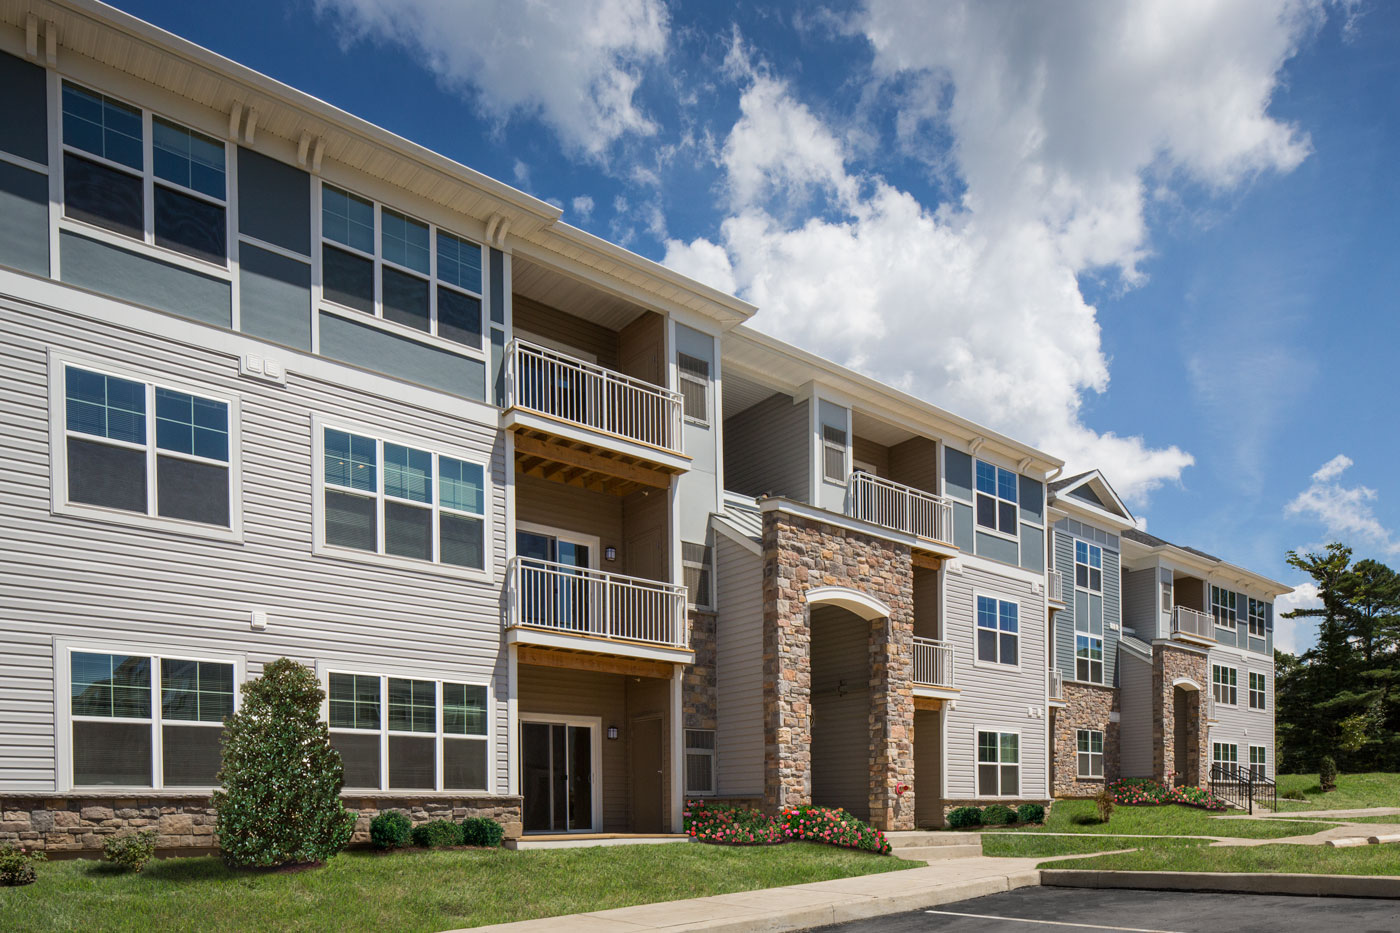 exterior of apartment building with green lawn, bushes and flowers - apartments near christiana mall